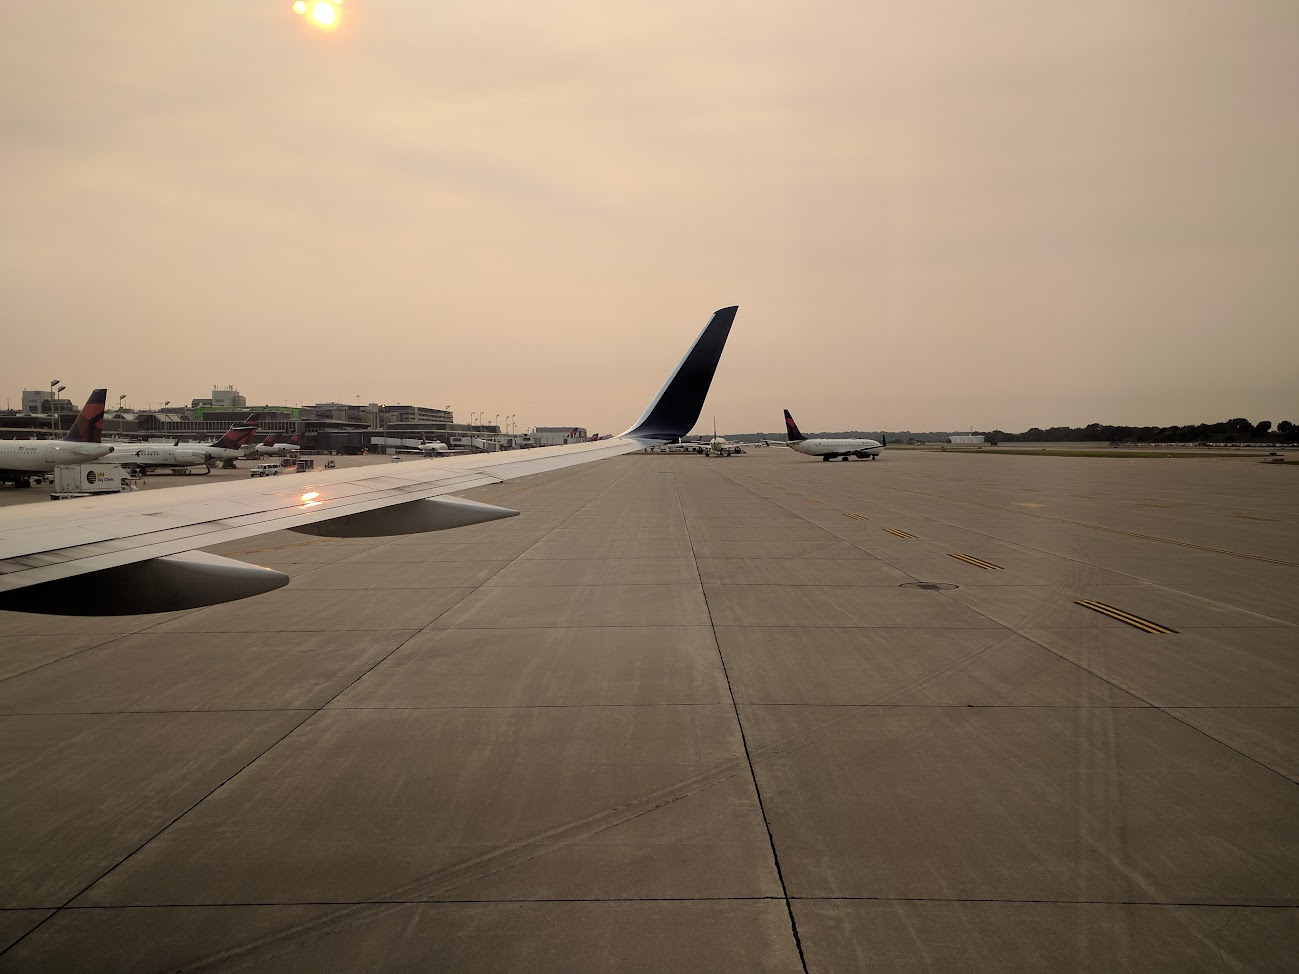 Review of Delta Air Lines flight from Minneapolis to Detroit